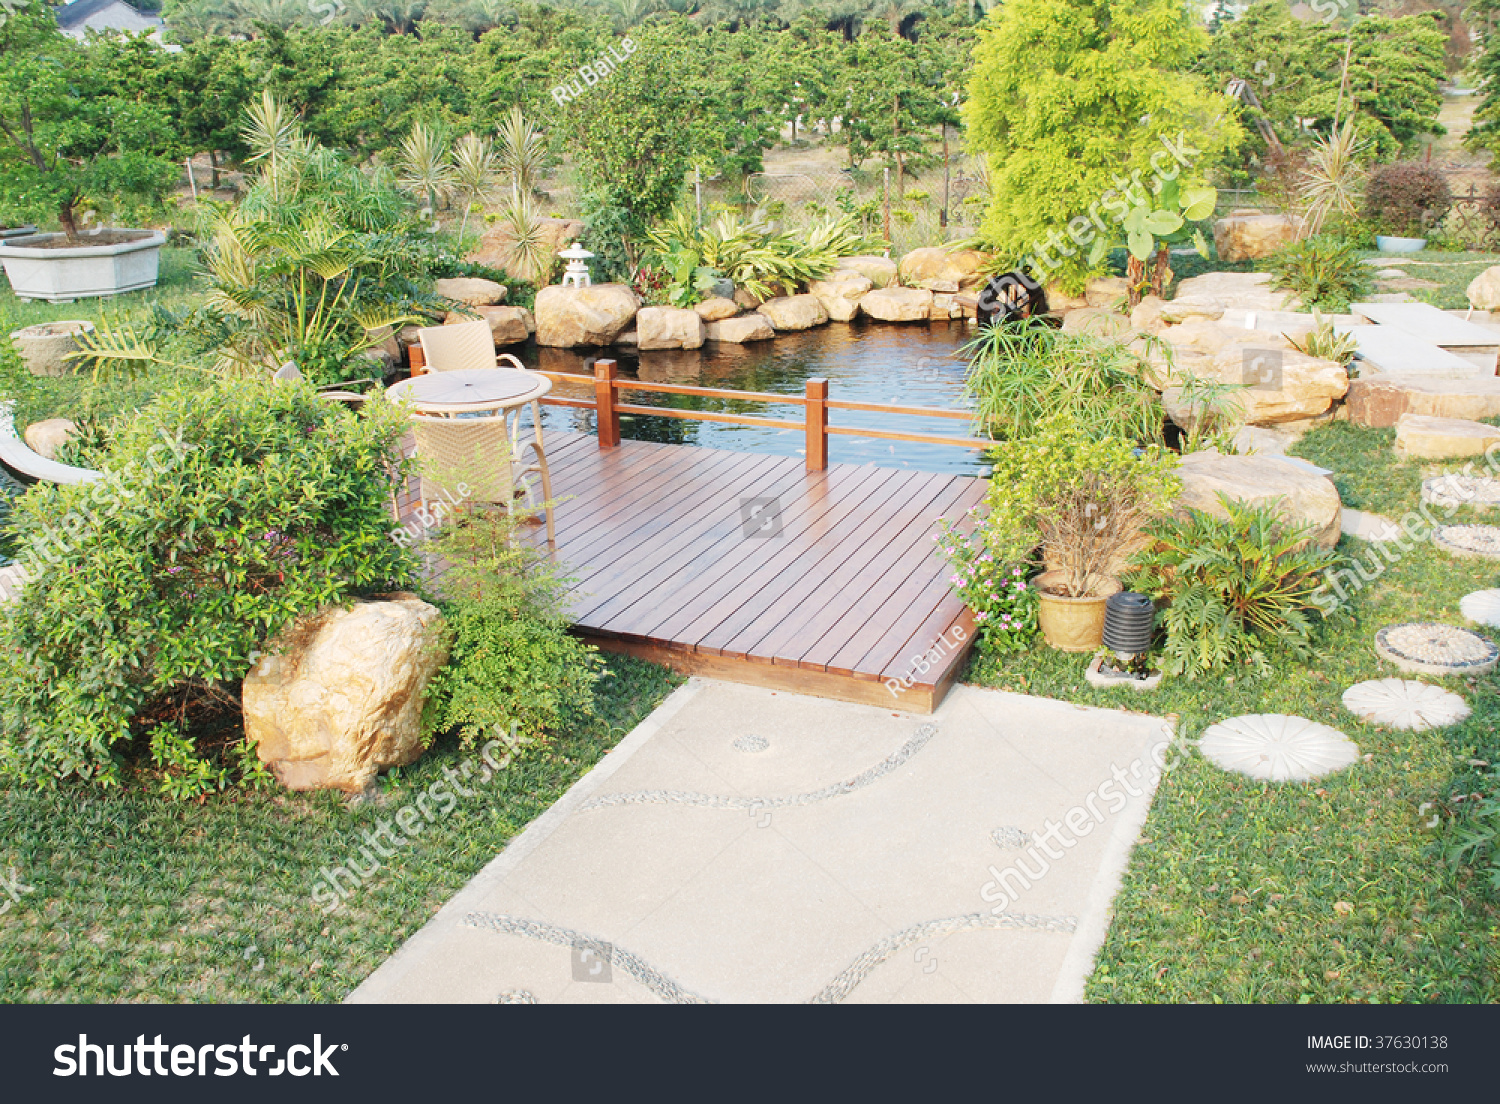 A privat garden with tropical plant and fish pond in south for Outdoor tropical fish pond